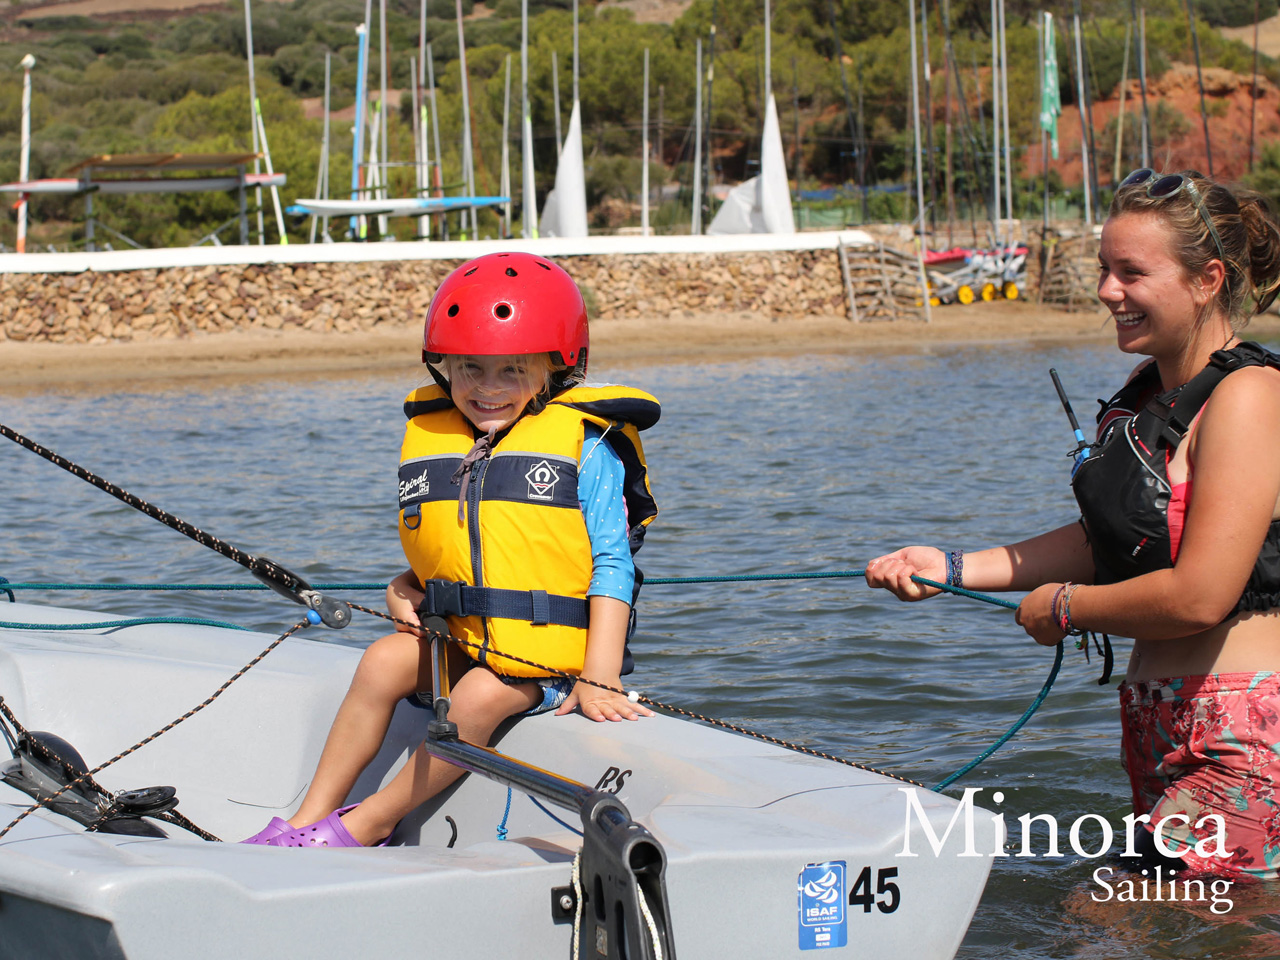 Childrens Sailing Clubs